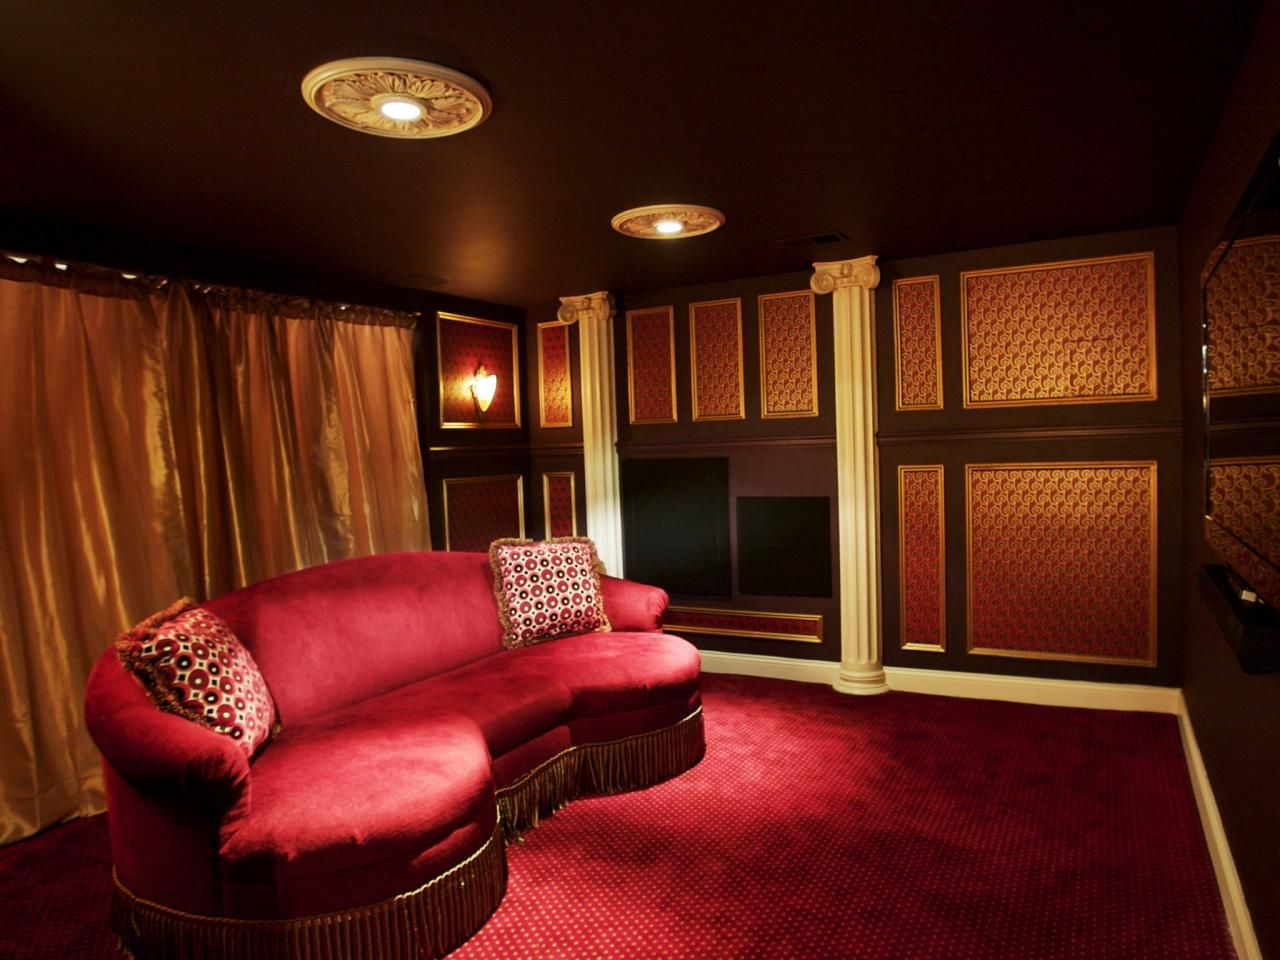 Dramatic Home Theater Design With Curtains On Every Wall   DigsDigs    Basement/Bar/Theater   Pinterest   Theatre Design, Walls And Wall Curtains Part 88